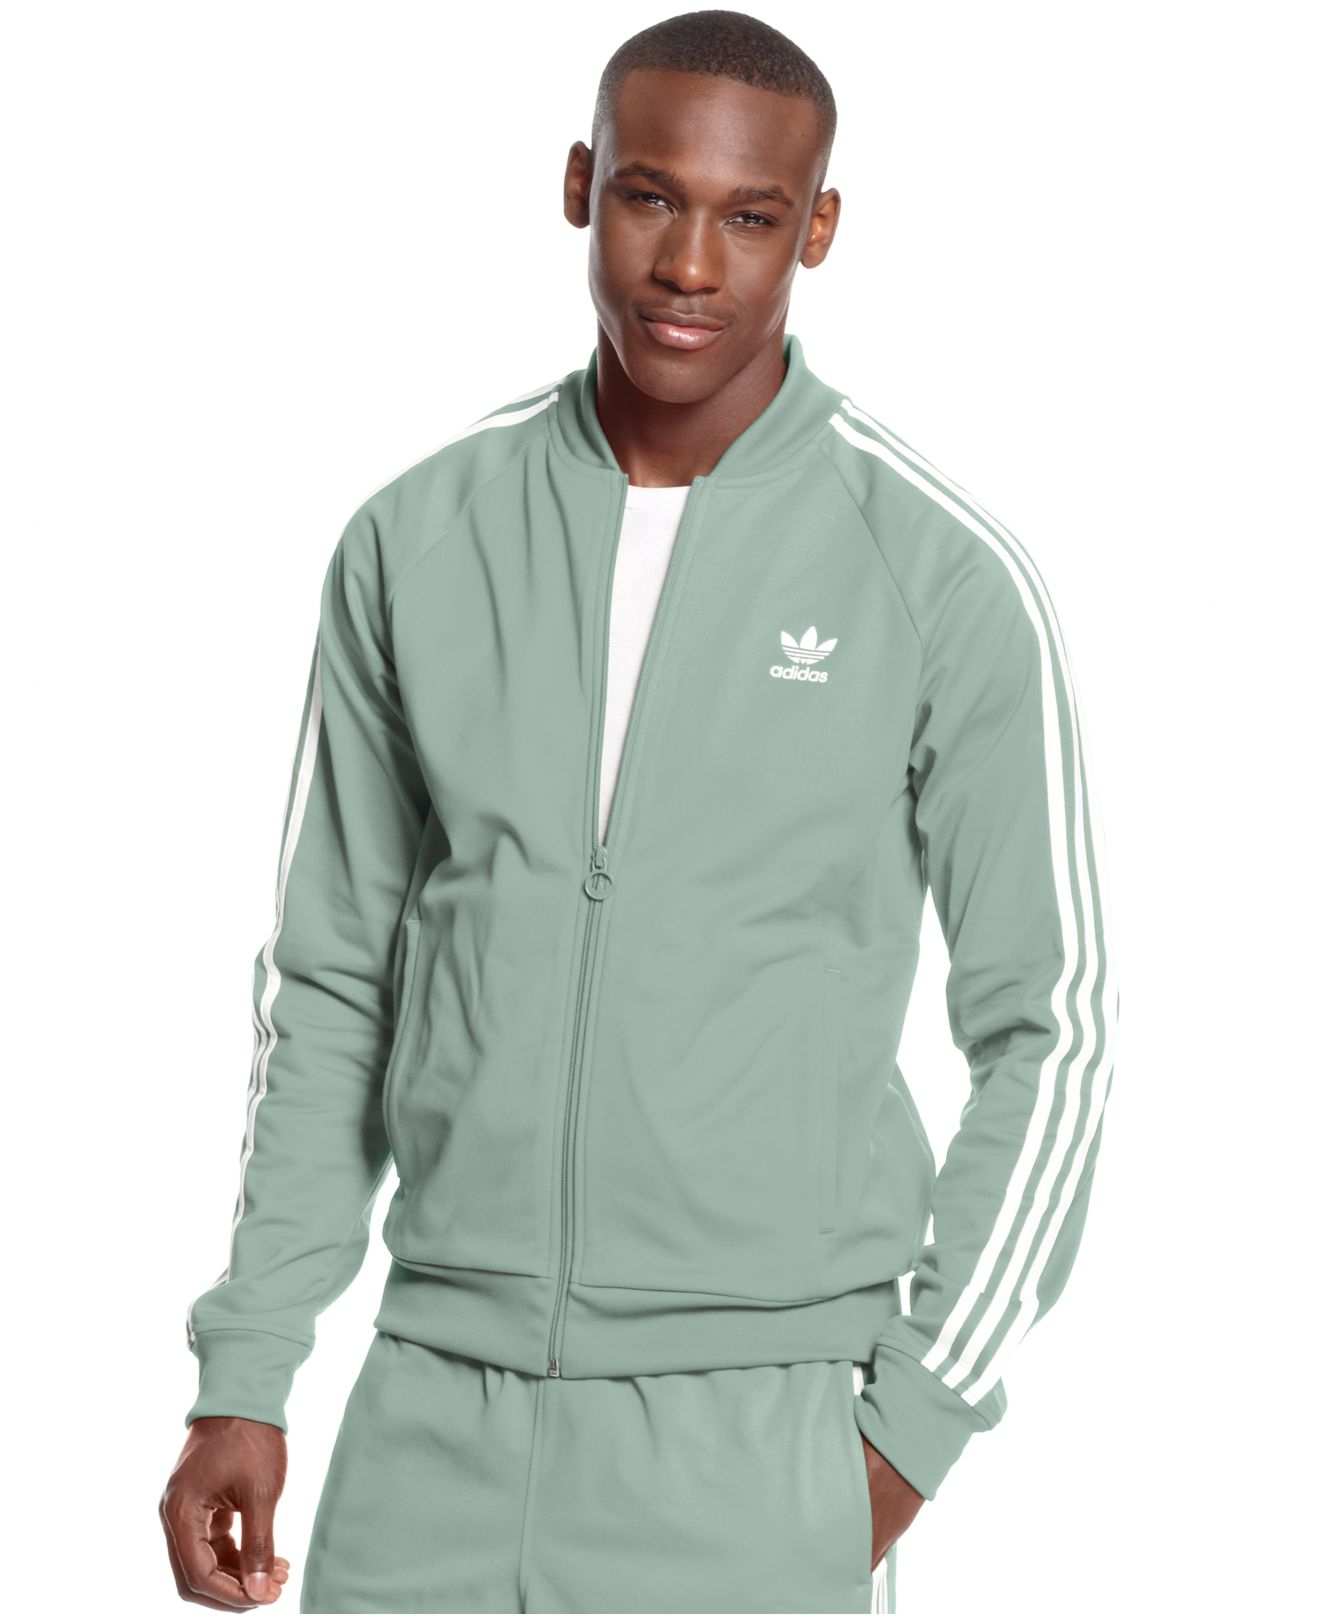 40e0c82ec9df2a Lyst - adidas Originals Superstar Track Jacket in Gray for Men